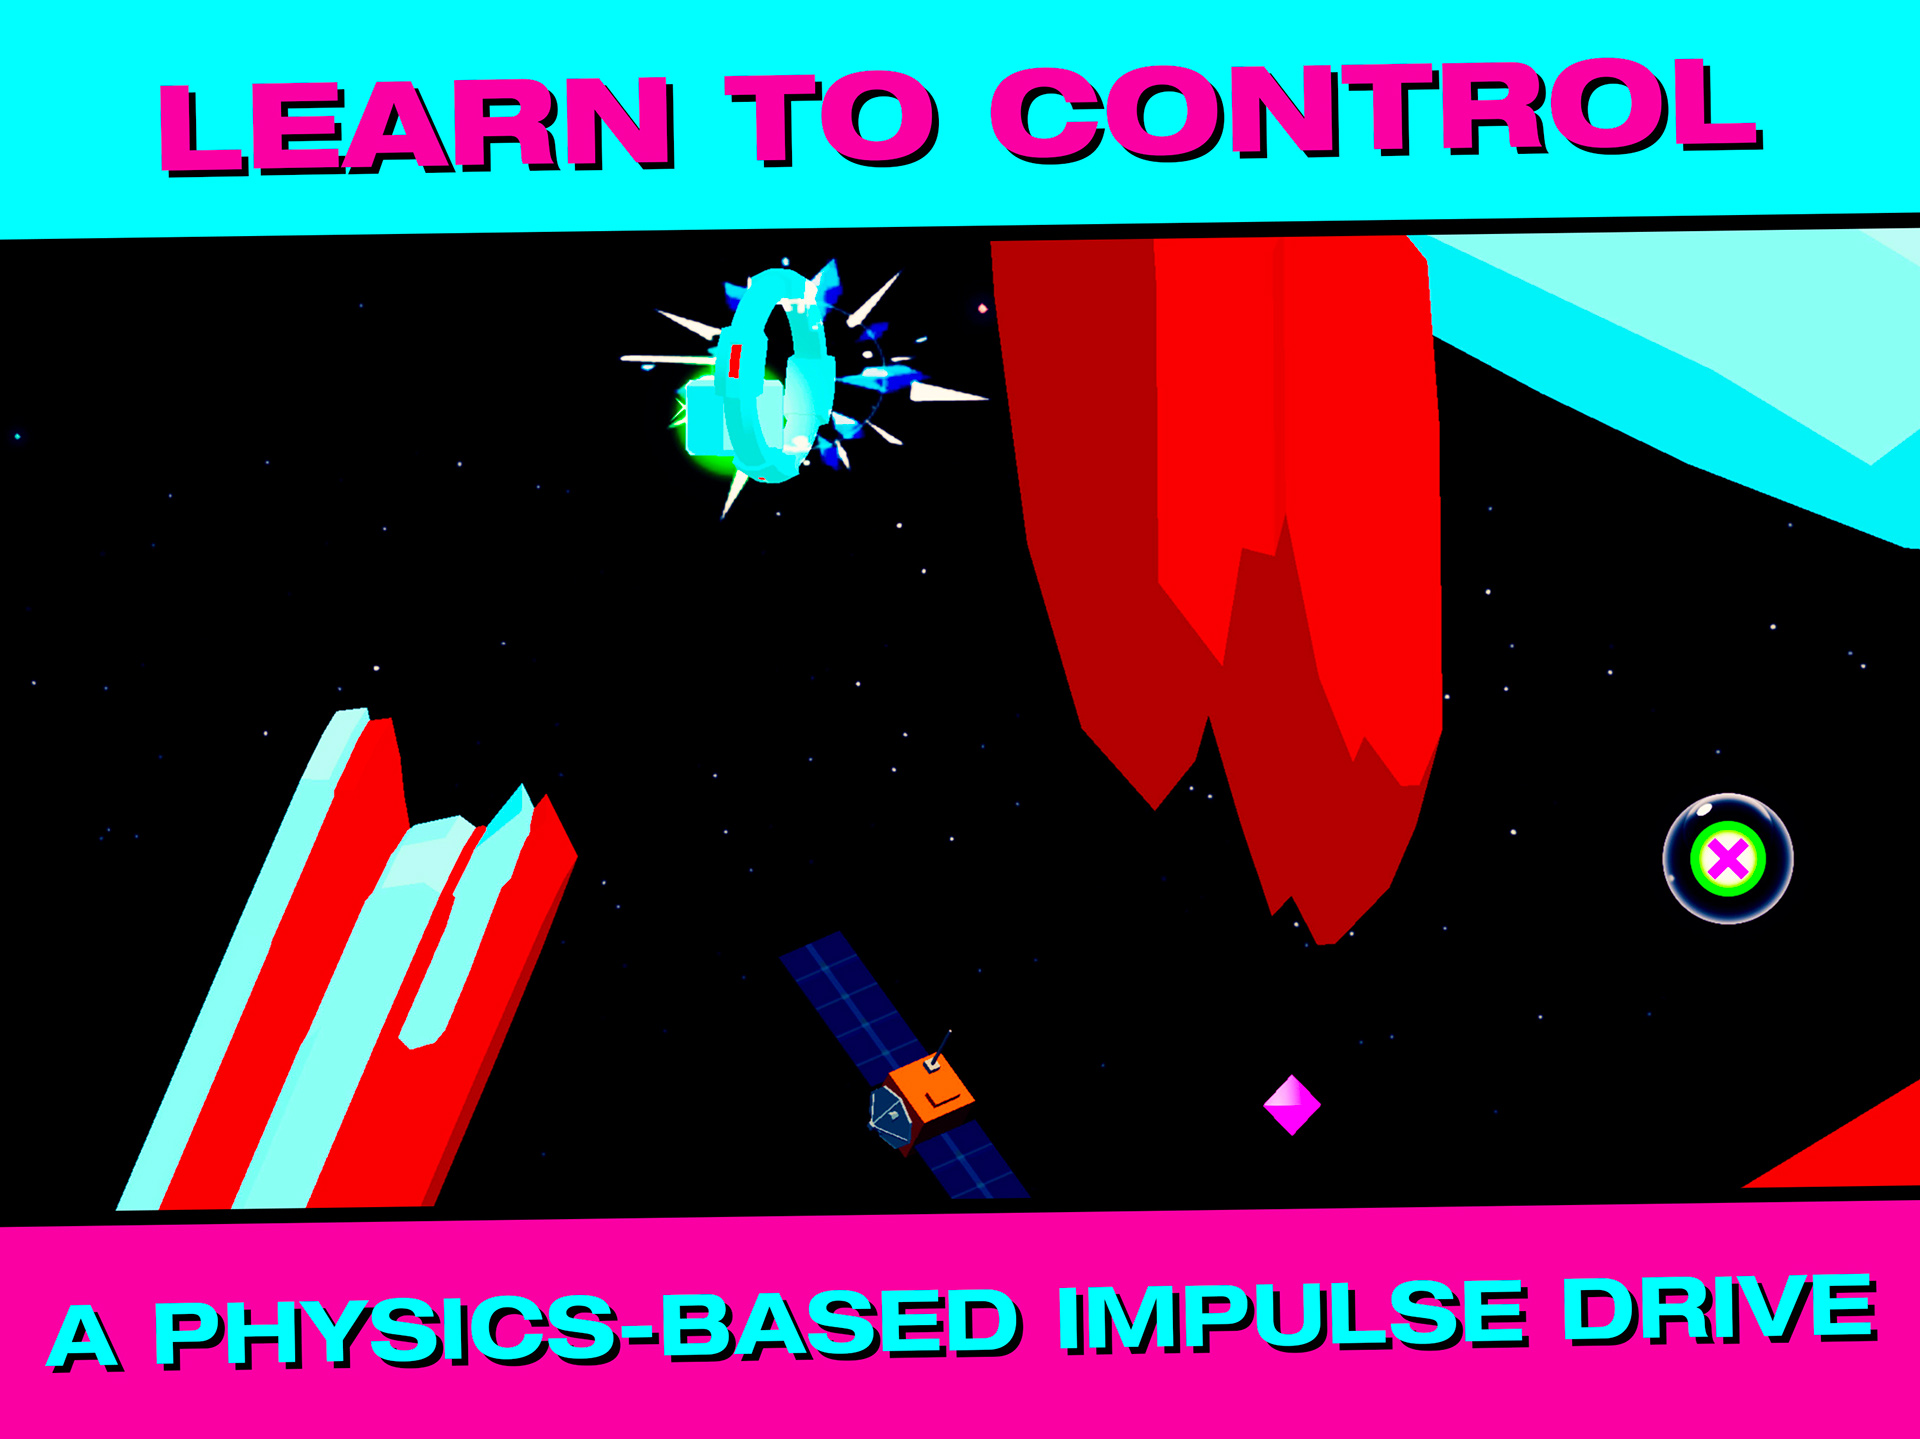 LEARN TO CONTROL A PHYSICS-BASED IMPULSE DRIVE